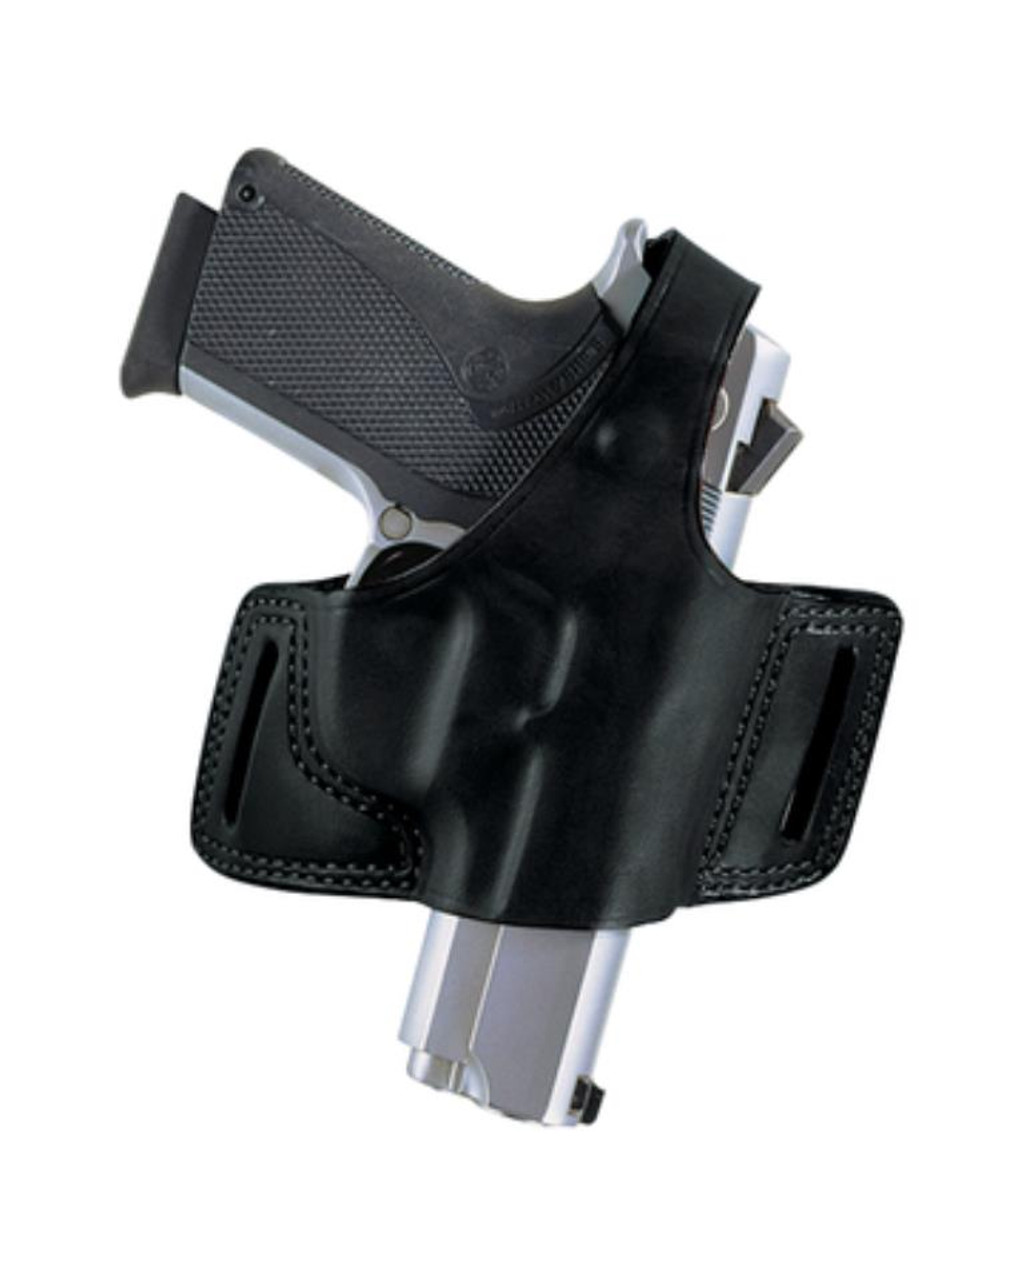 Bianchi 5 Black Widow Holster Ruger LCR  38 Special Plain